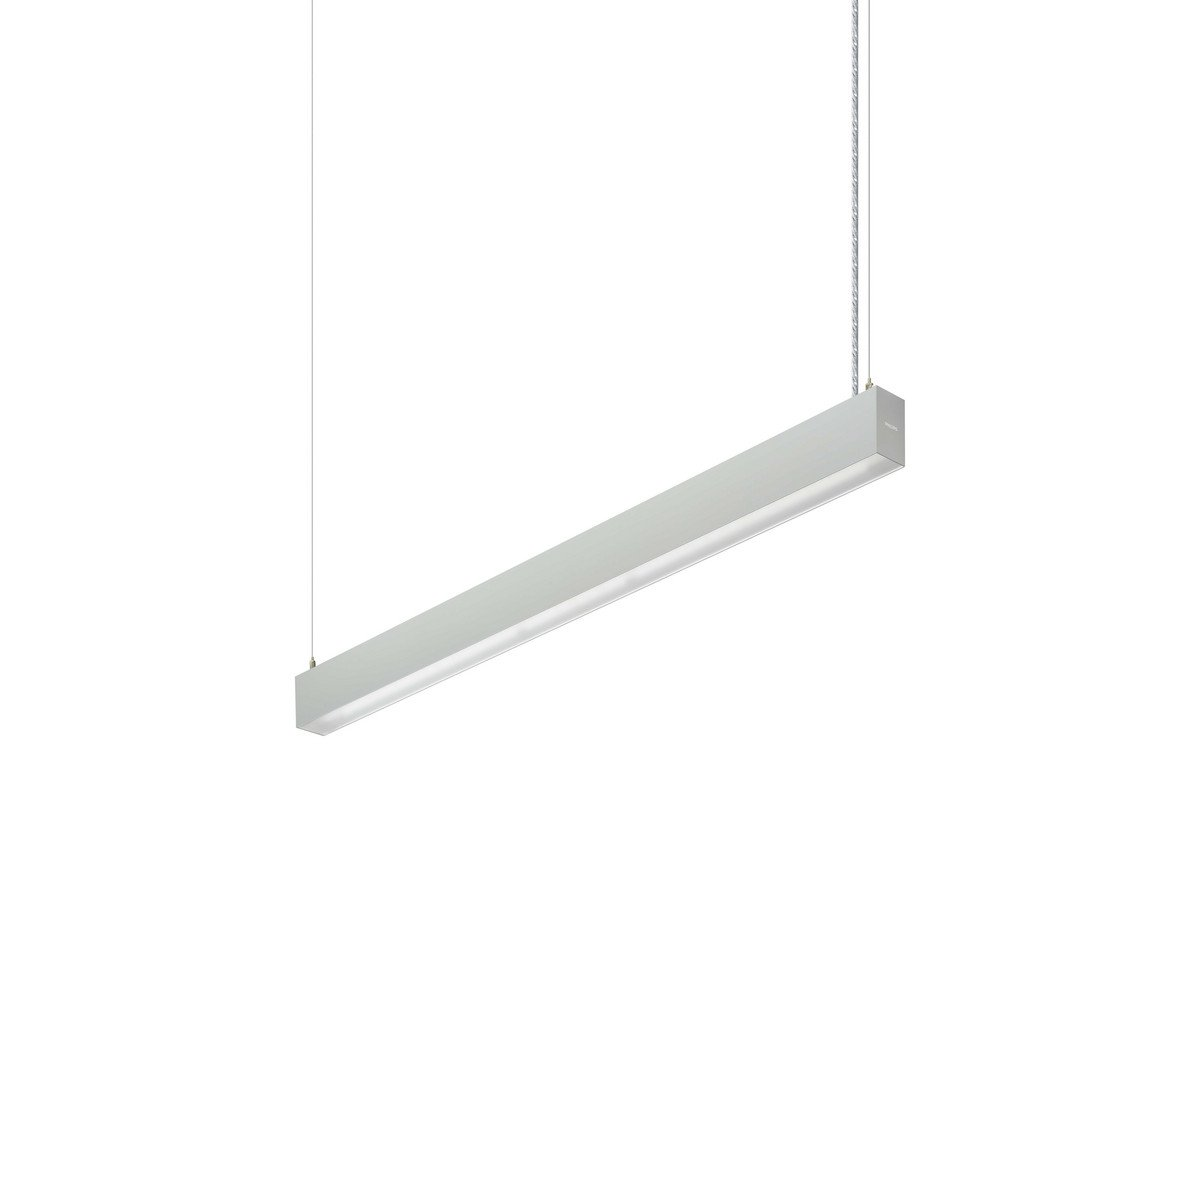 TrueLine Office Compliant SP530P LED 4000lm/840 PSD PI5 SM2 1130mm Alu